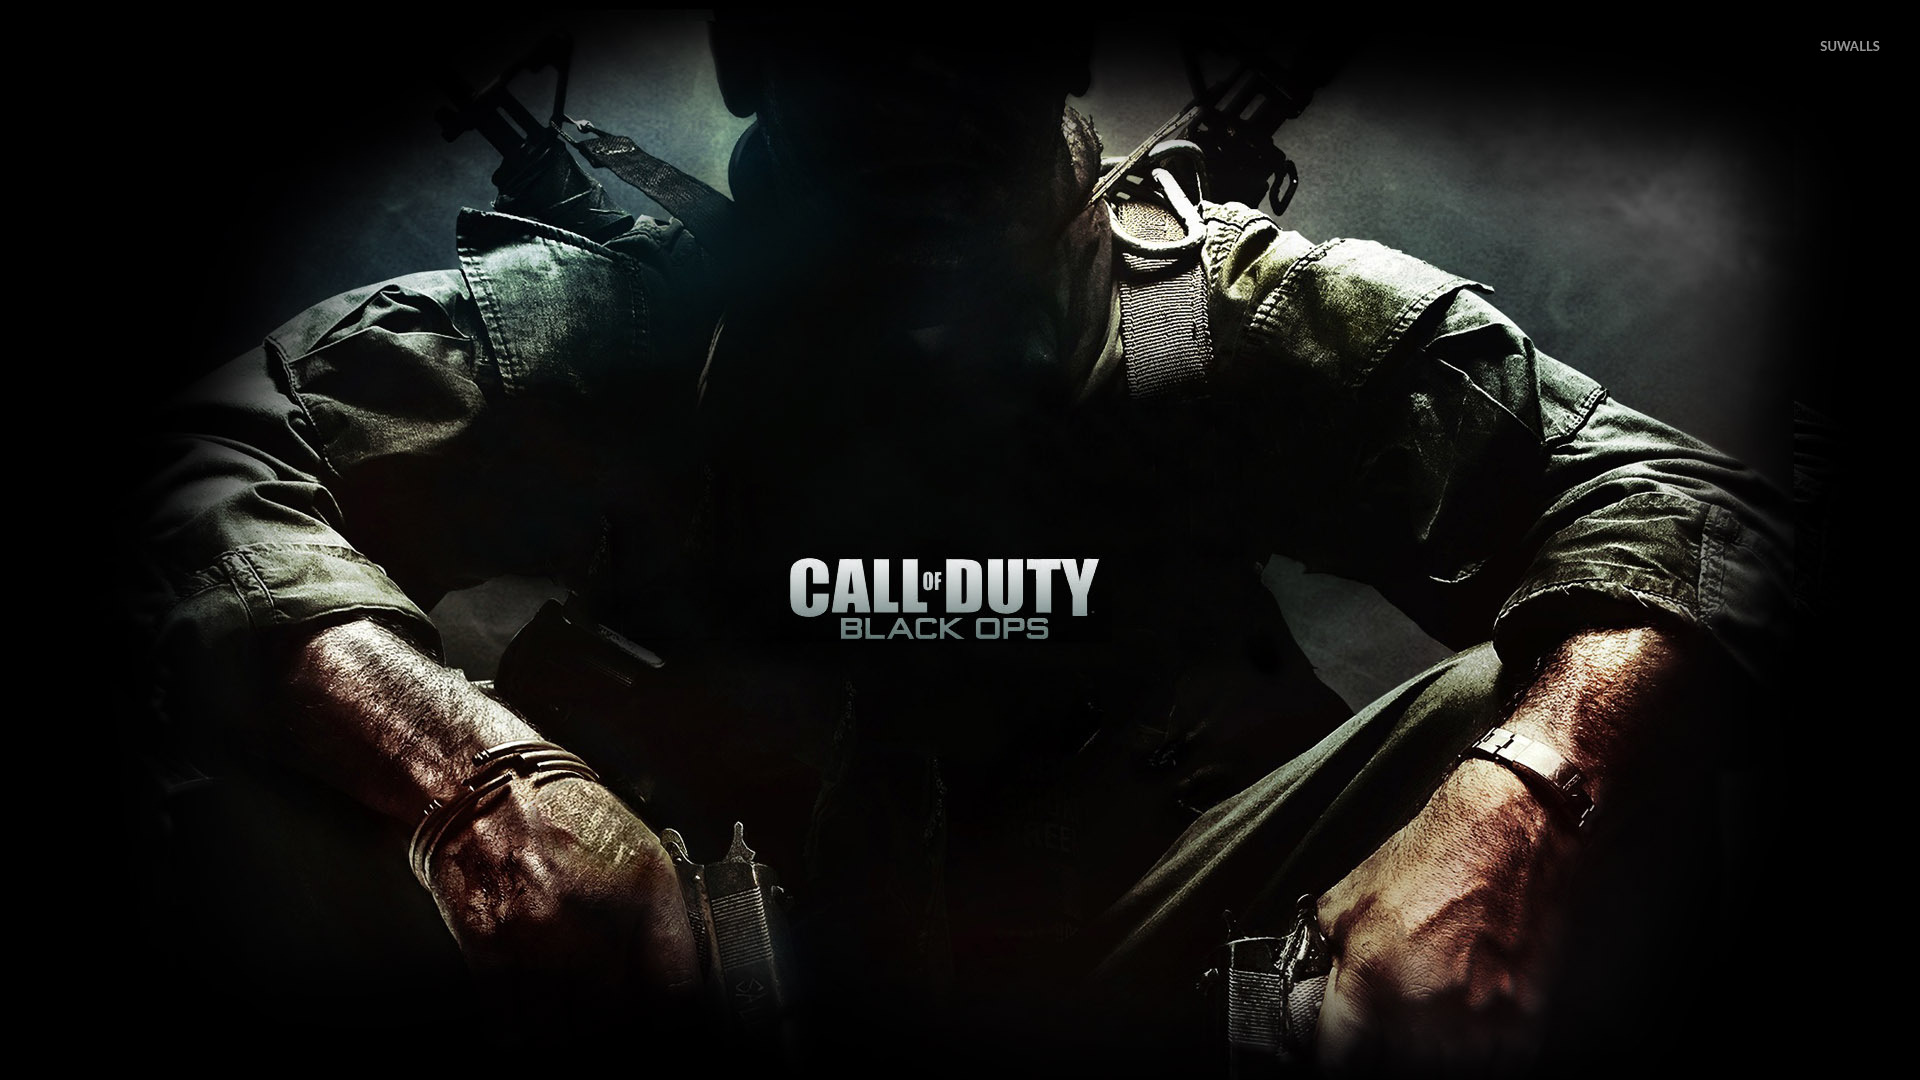 Call Of Duty Black Ops 2 Wallpaper Game Wallpapers 26146